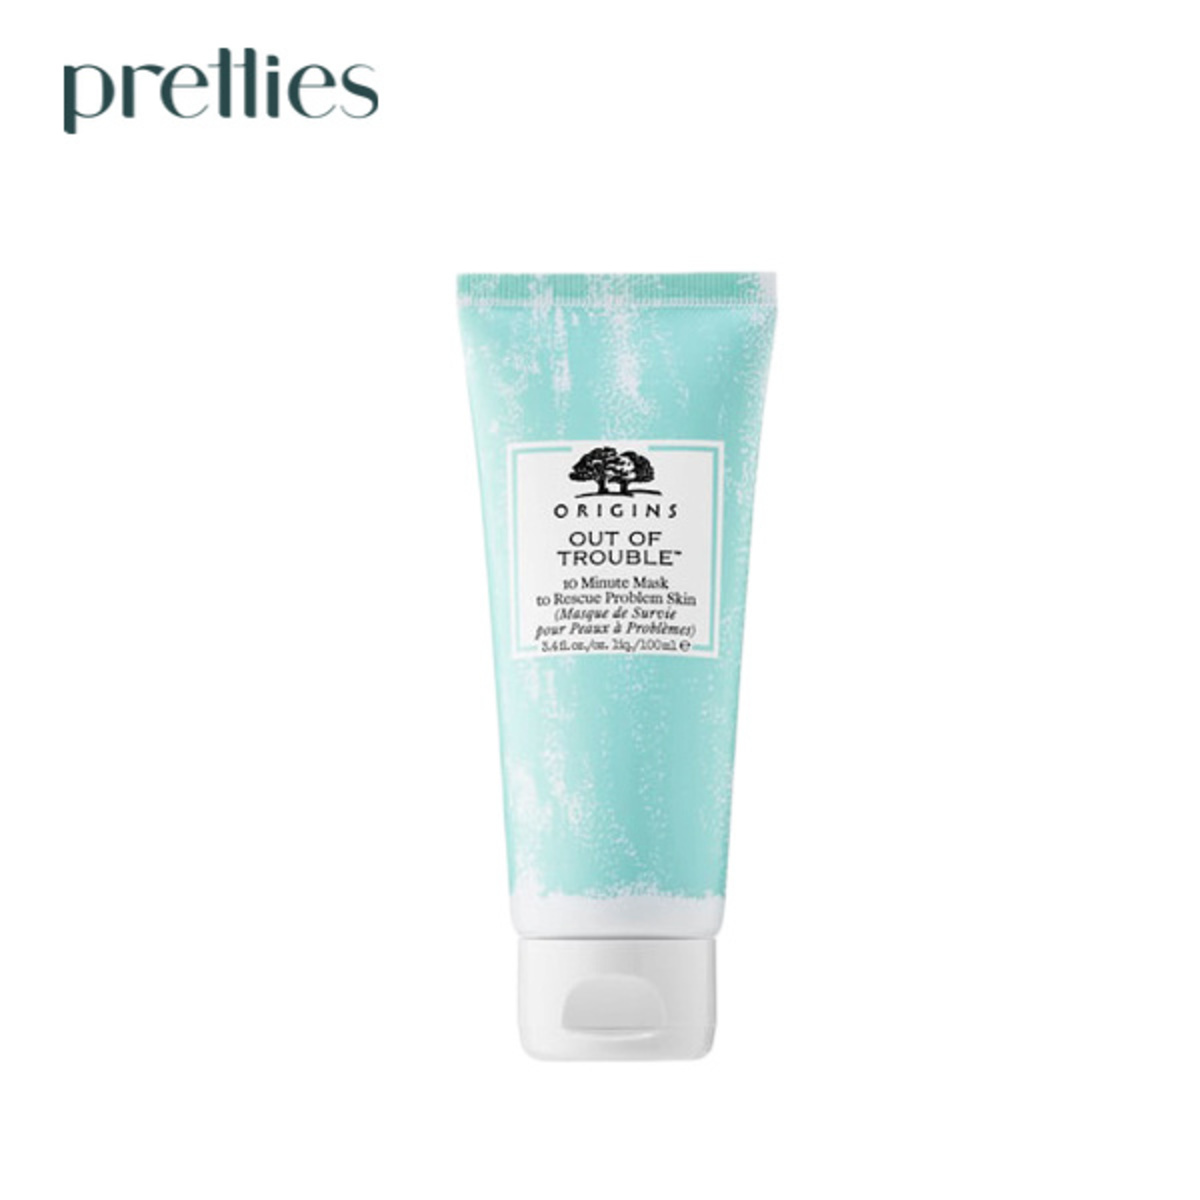 Out of Trouble 10 Minute Mask to Rescue Problem Skin 100ml (NEW)